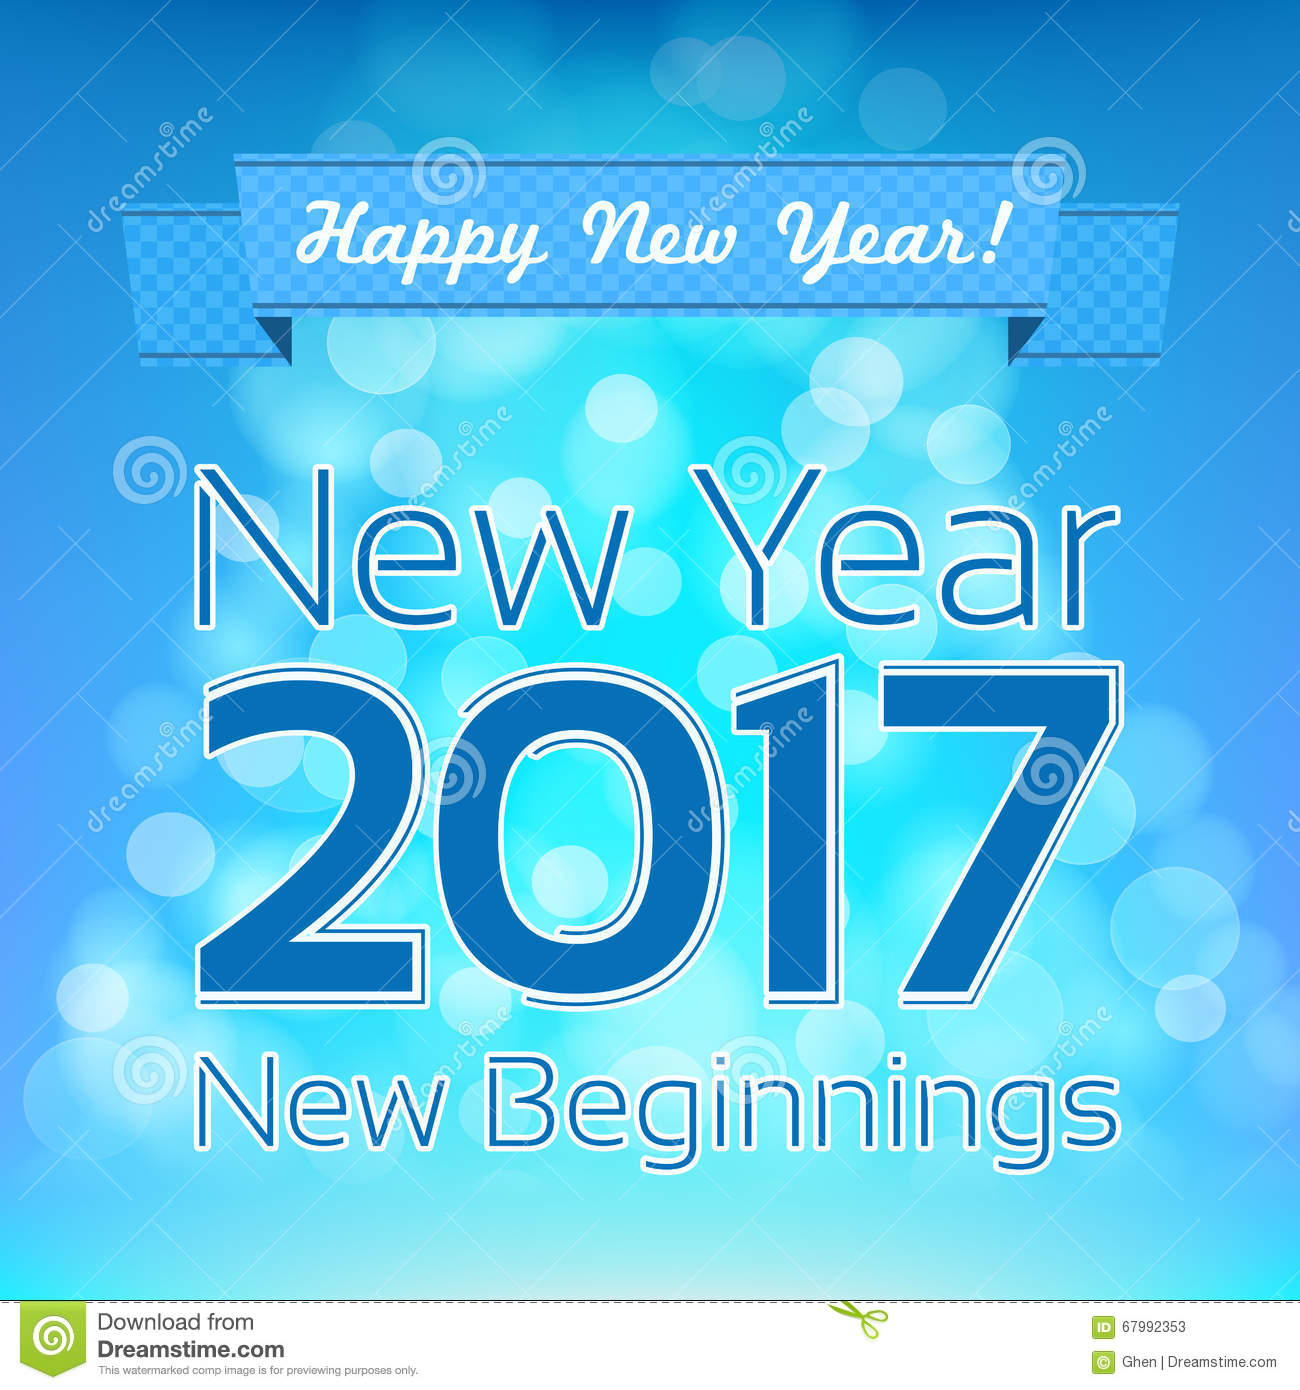 happy new year greeting vector design template new year 2017